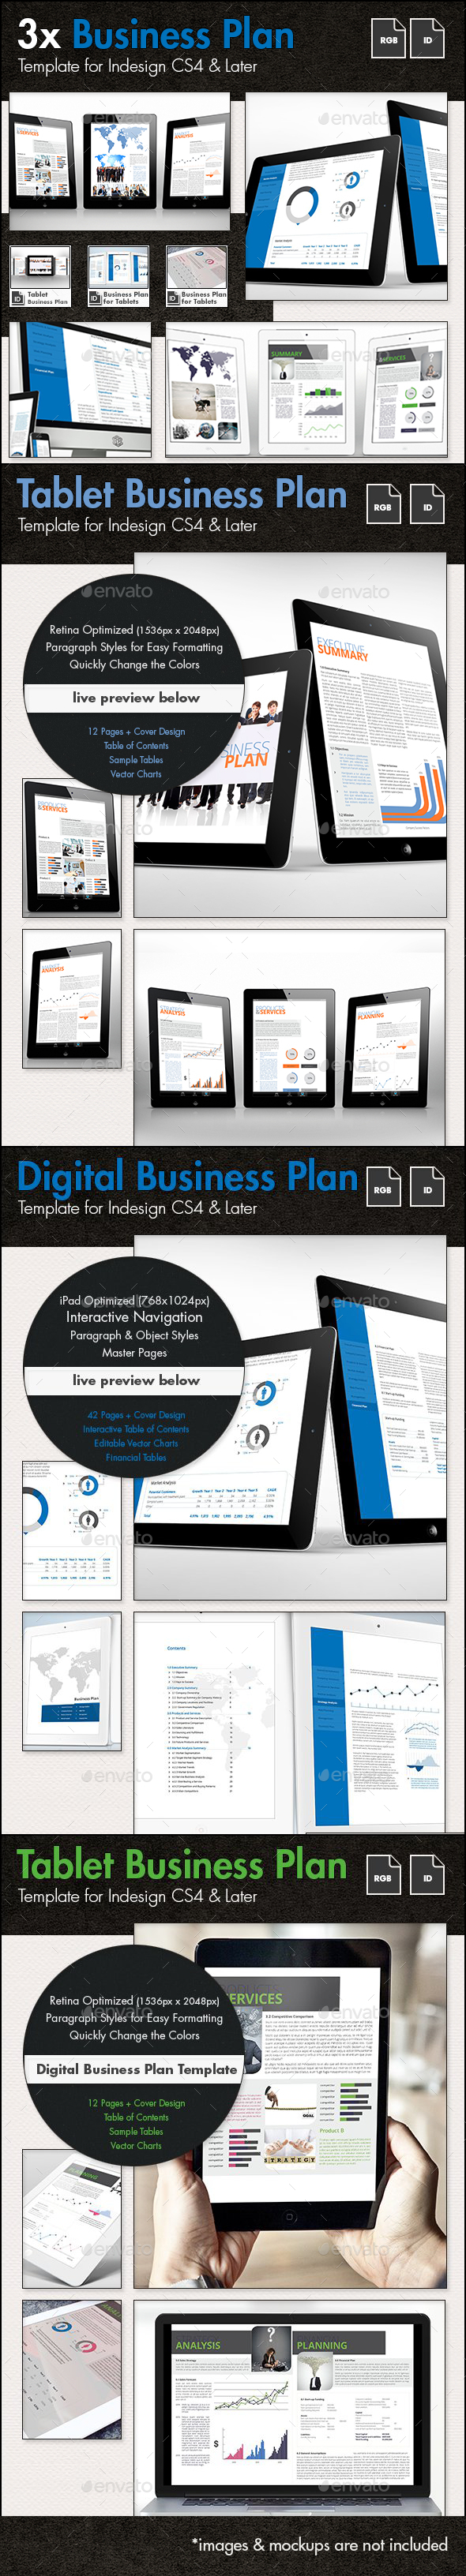 Business Plan for Tablets - The Bundle - Digital Books ePublishing